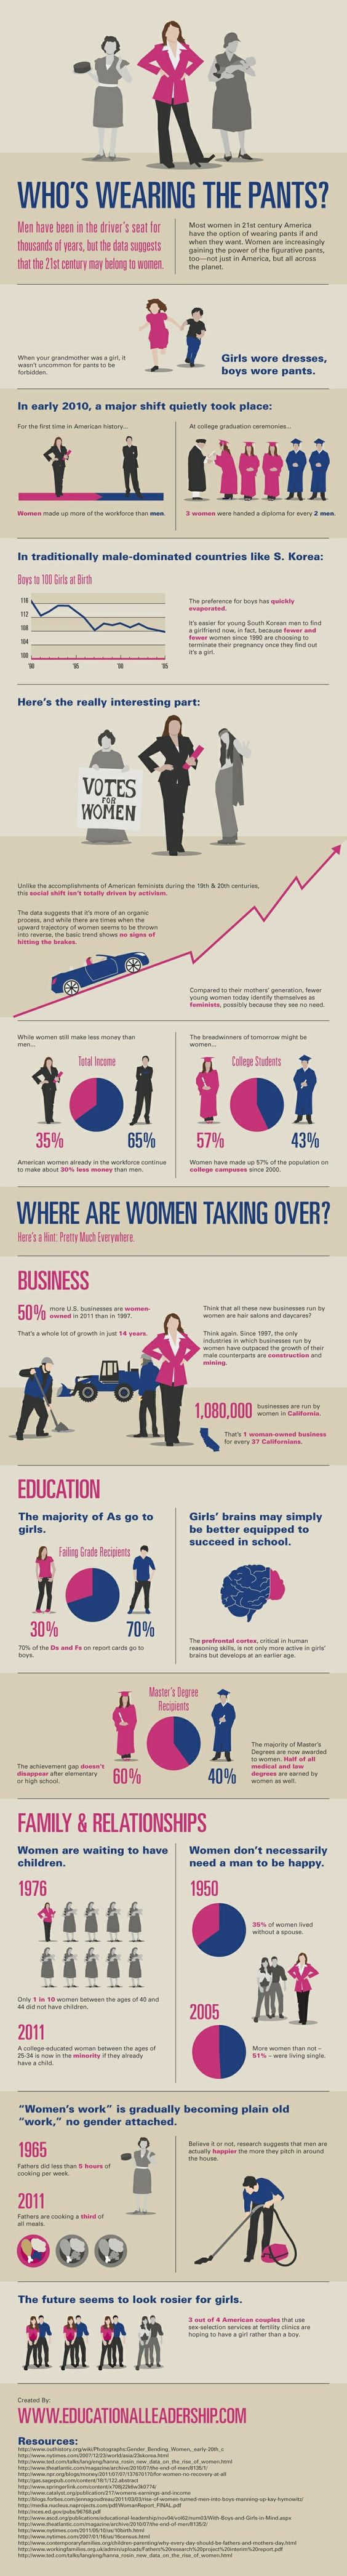 Summarize 'Gender bias' in the media in terms of its ability to influence society?